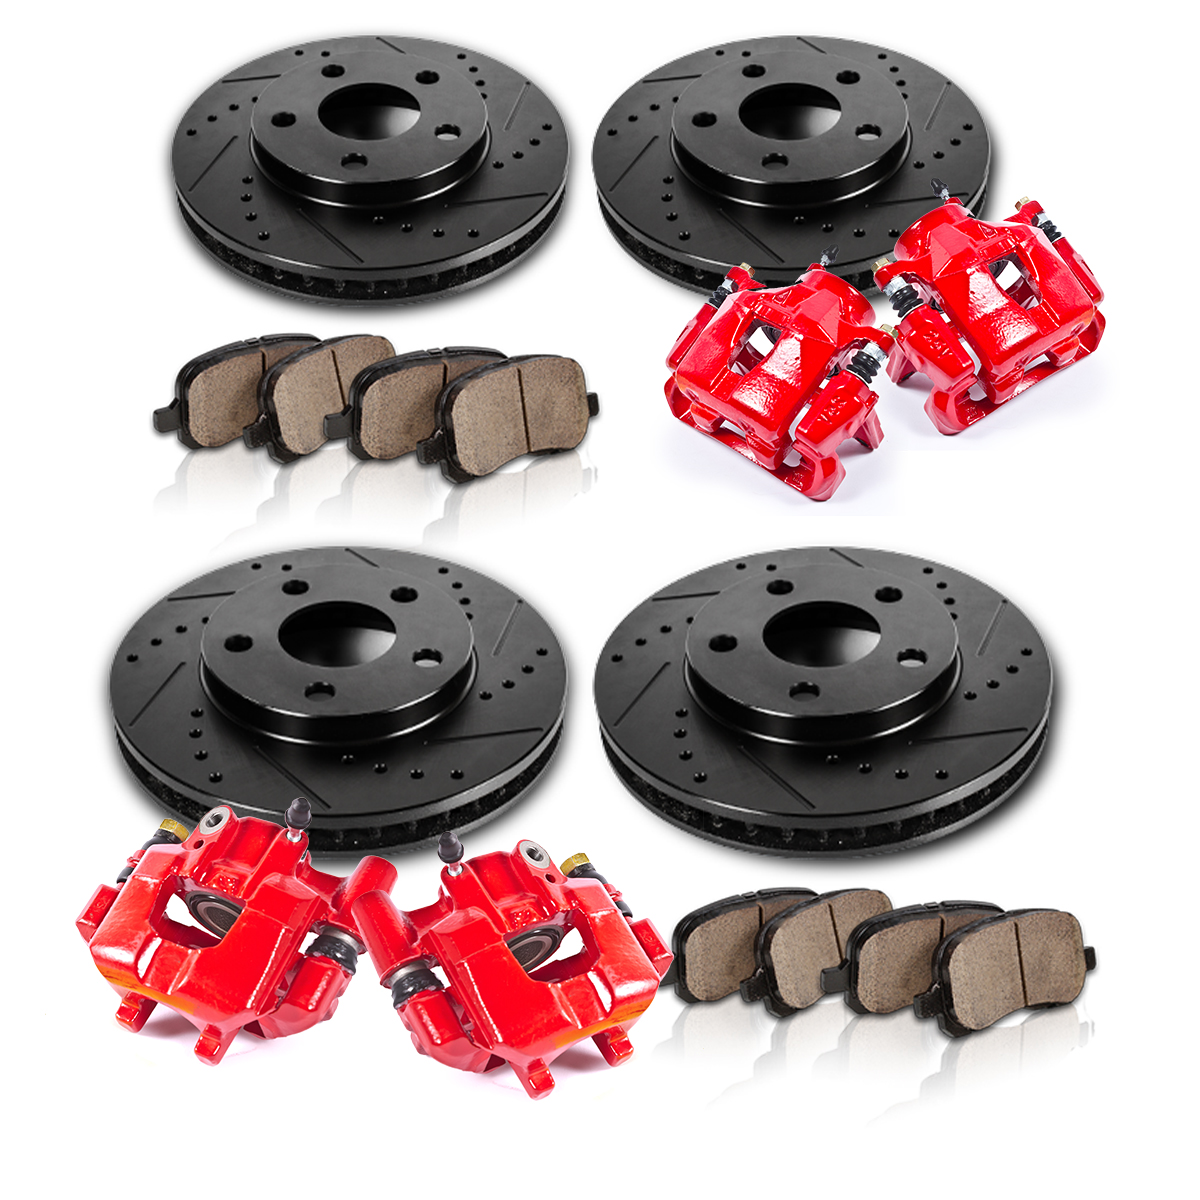 Sold 2004 2005 2006 2007 2008 Acura Tl Front Bumper Meugen: Front And Rear Red Calipers & Black Rotors & Pads 2005